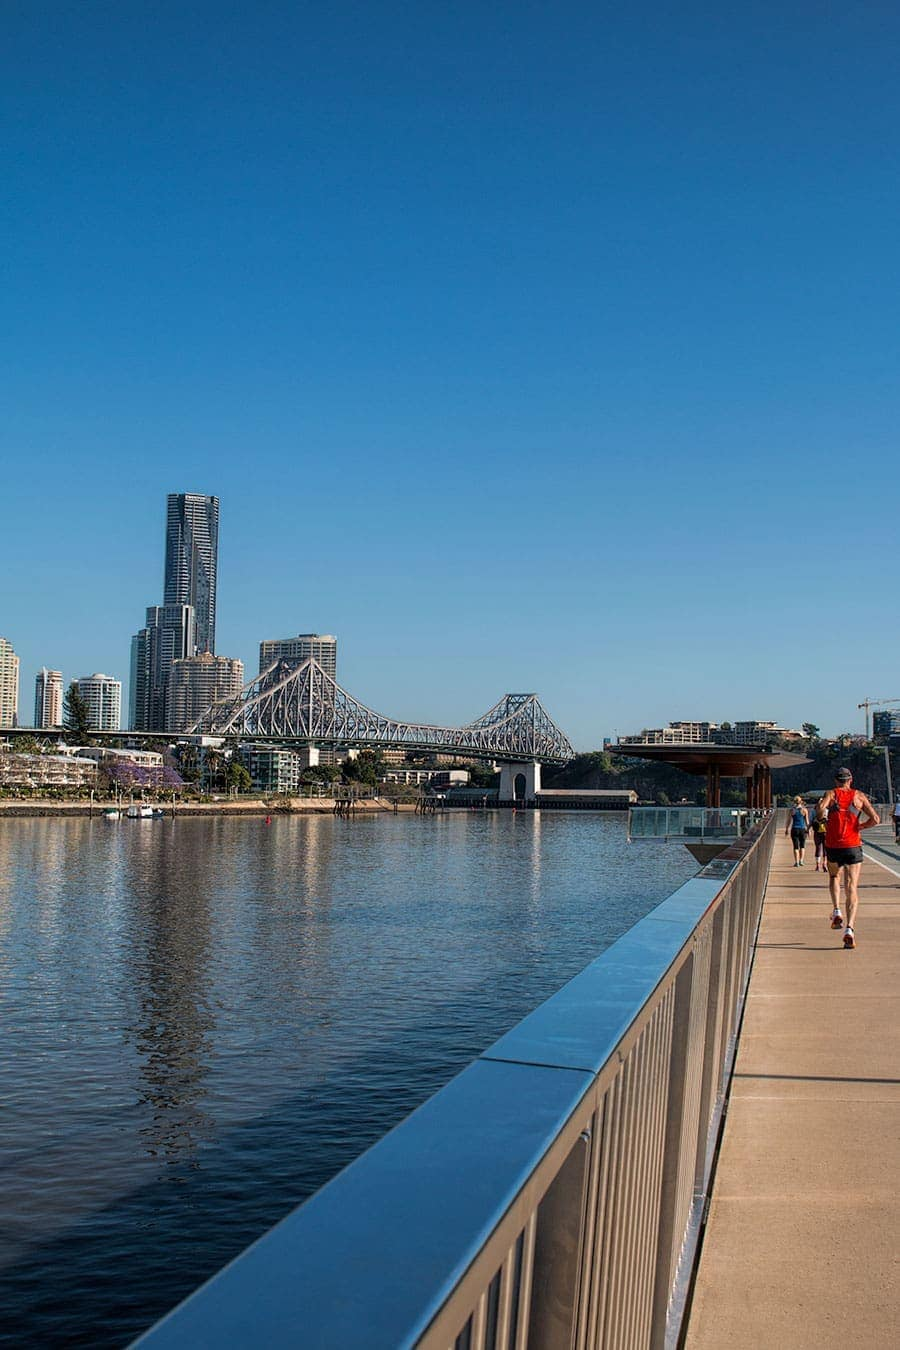 Brisbane city has the perfect climate and river front setting to support casual and relaxed vibe. Enjoy your time exploring Brisbane and get out and active on the city to New Farm river walk.